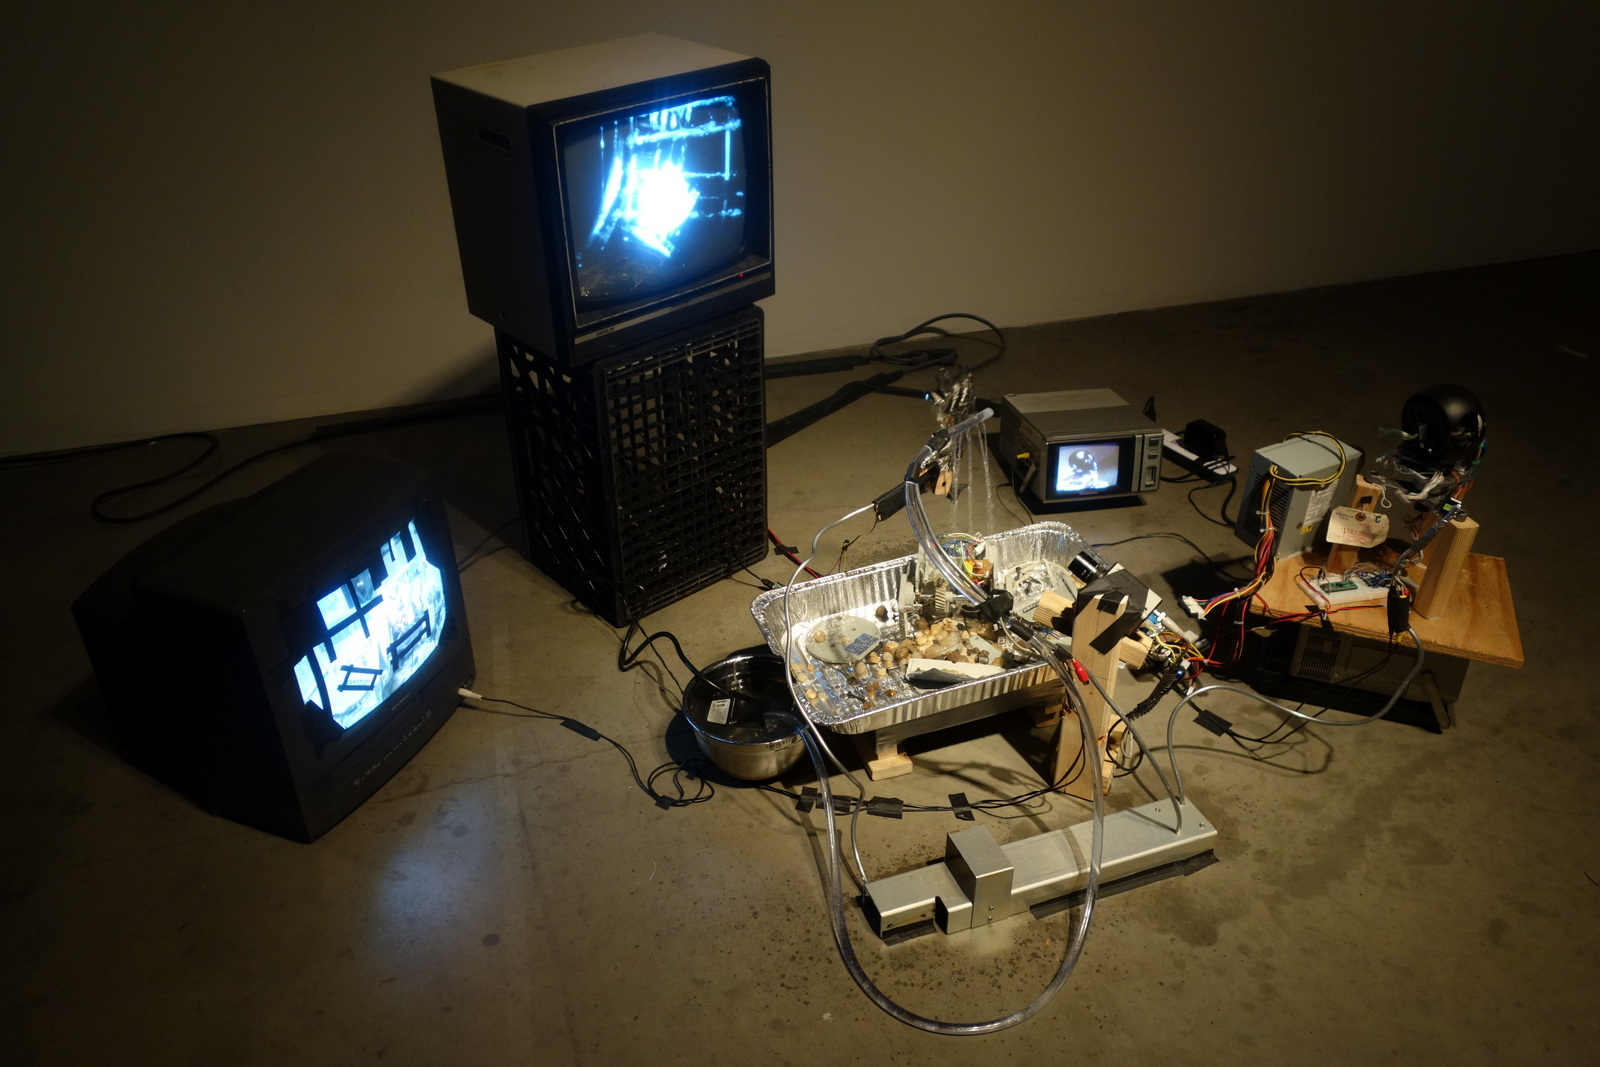 Last Robot Left Alive by Bradley Rothenberg and Adam Mayer. The installation postulated the resurrection of a broken security camera that fell to the ground likely due to wind sheer from Hurricane Sandy.